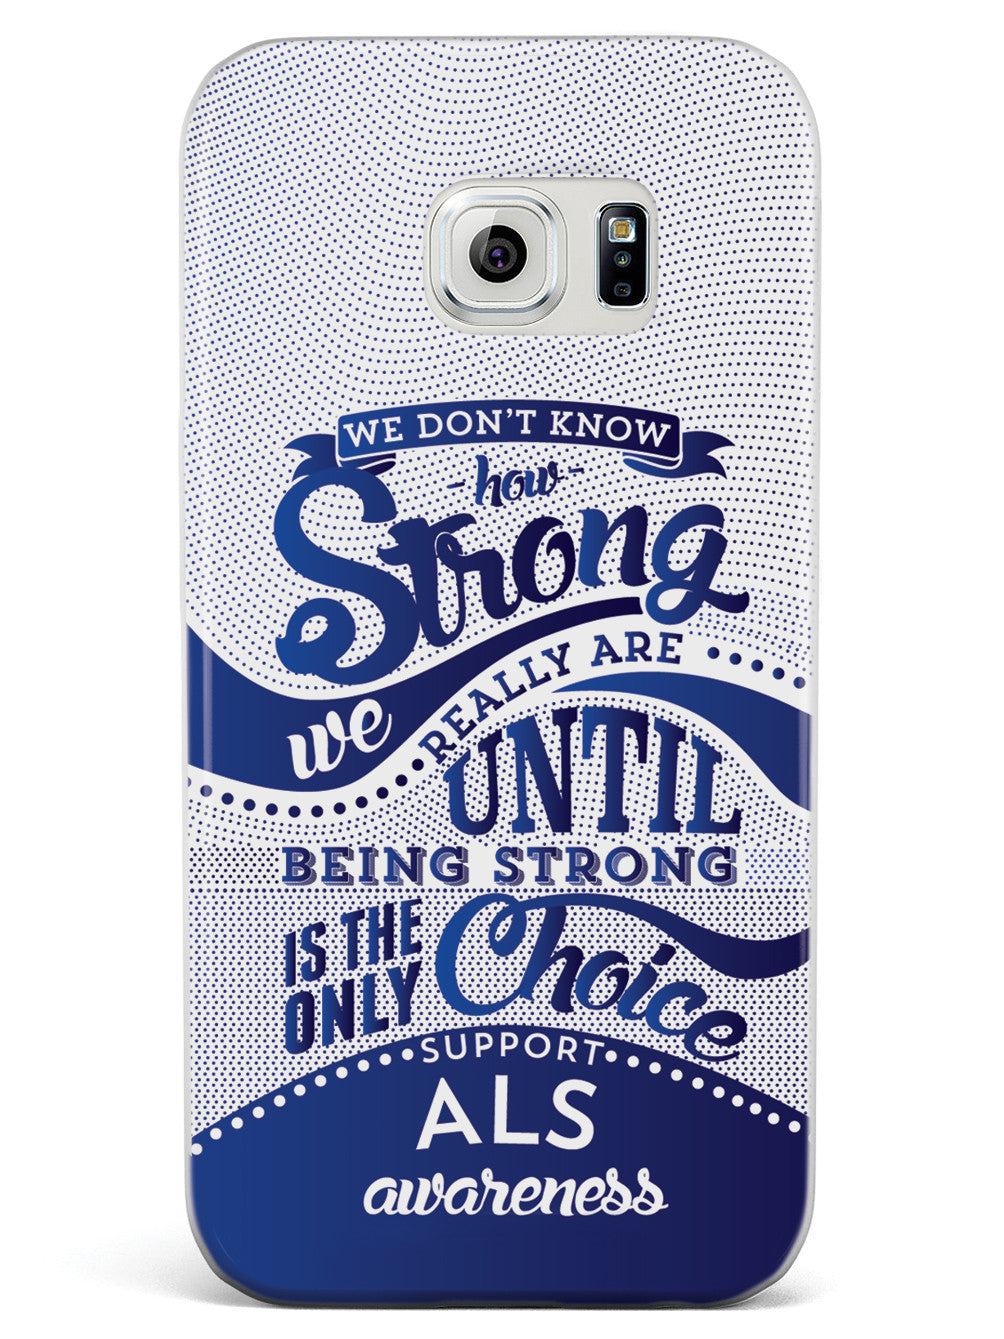 How Strong - ALS Awareness Case